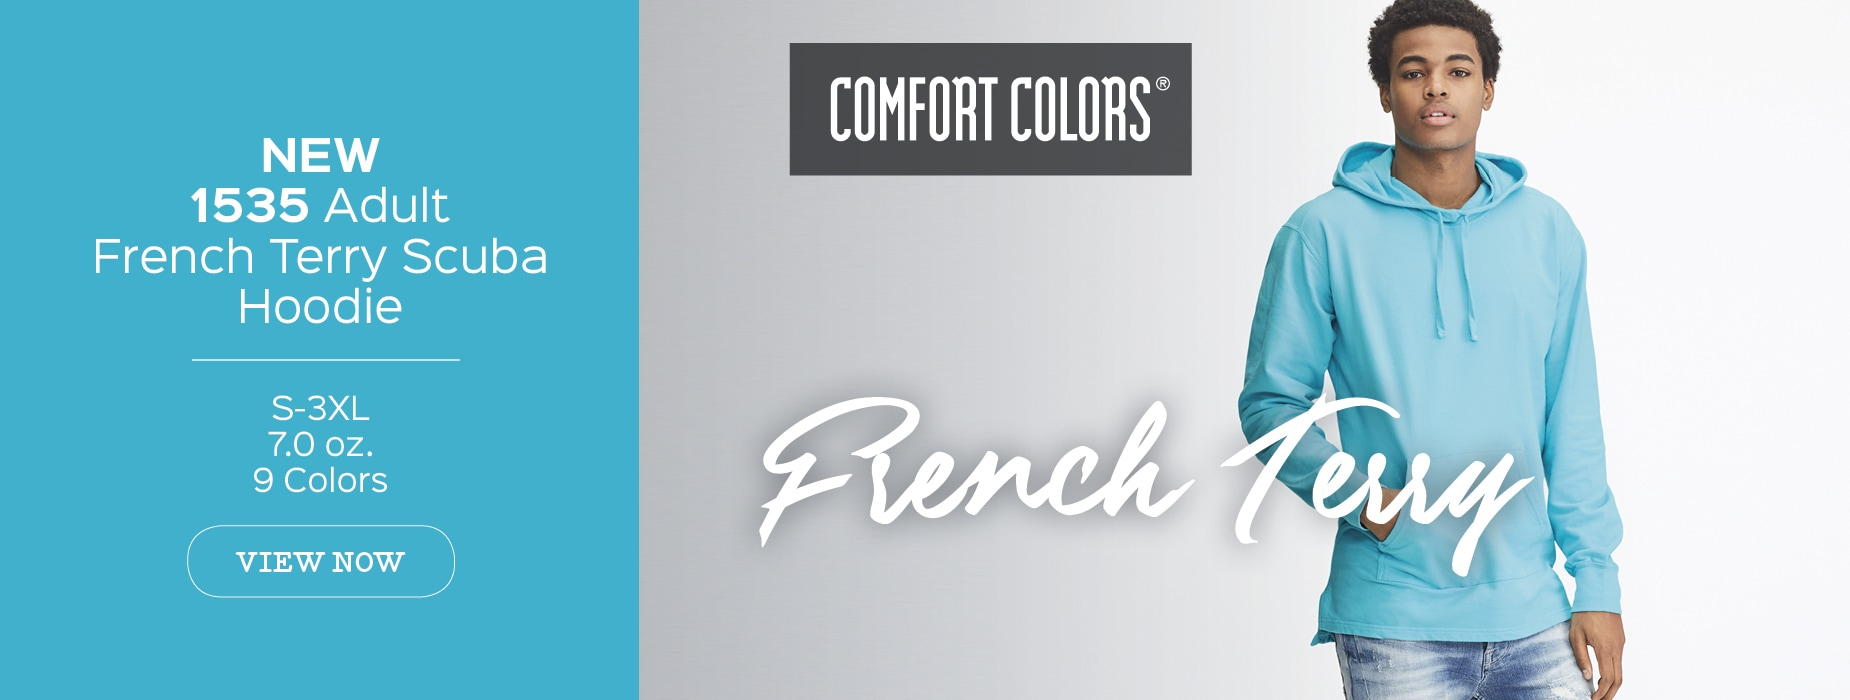 New Style 1535, Adult Comfort Colors French Terry Scuba Hood View Now